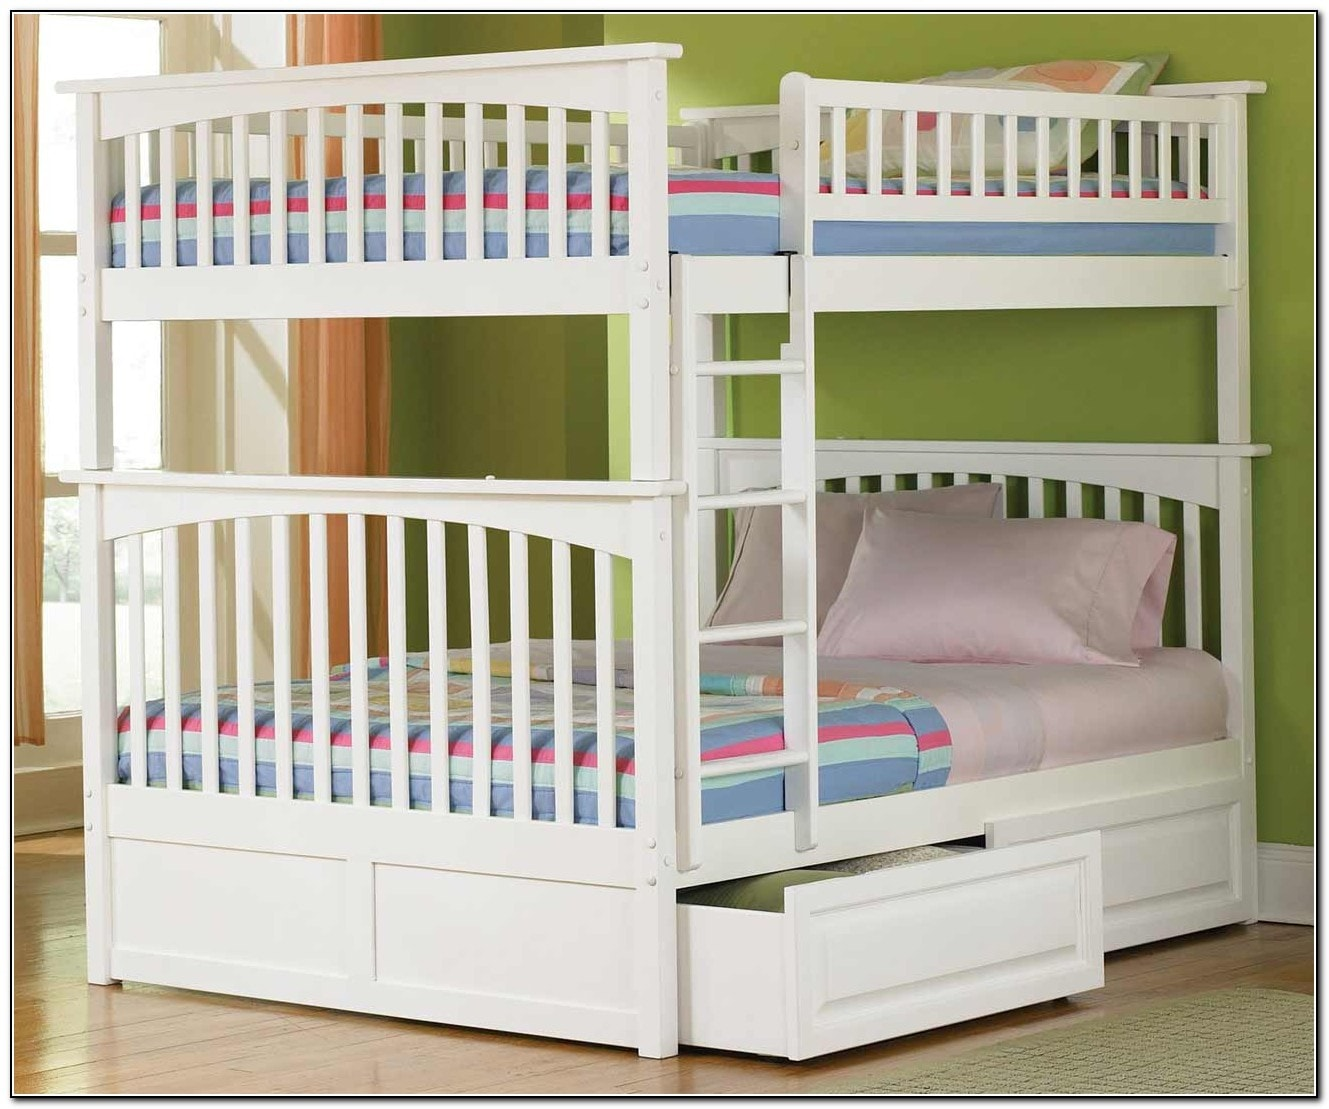 Refined Full Size Bunk Beds